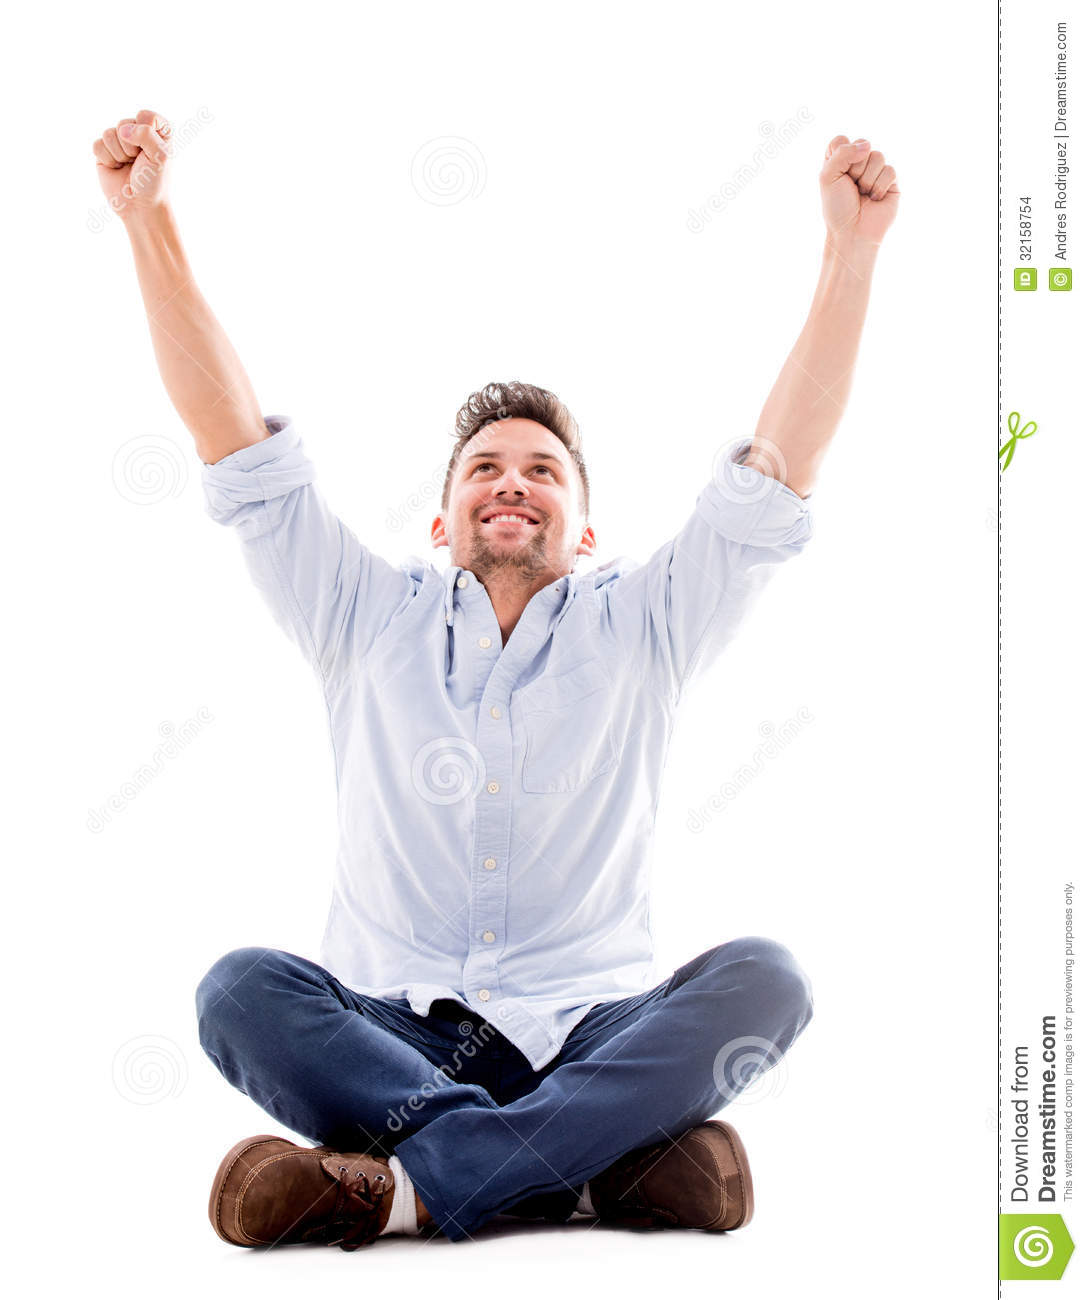 happy-man-arms-up-sitting-isolated-over-white-background-32158754.jpg